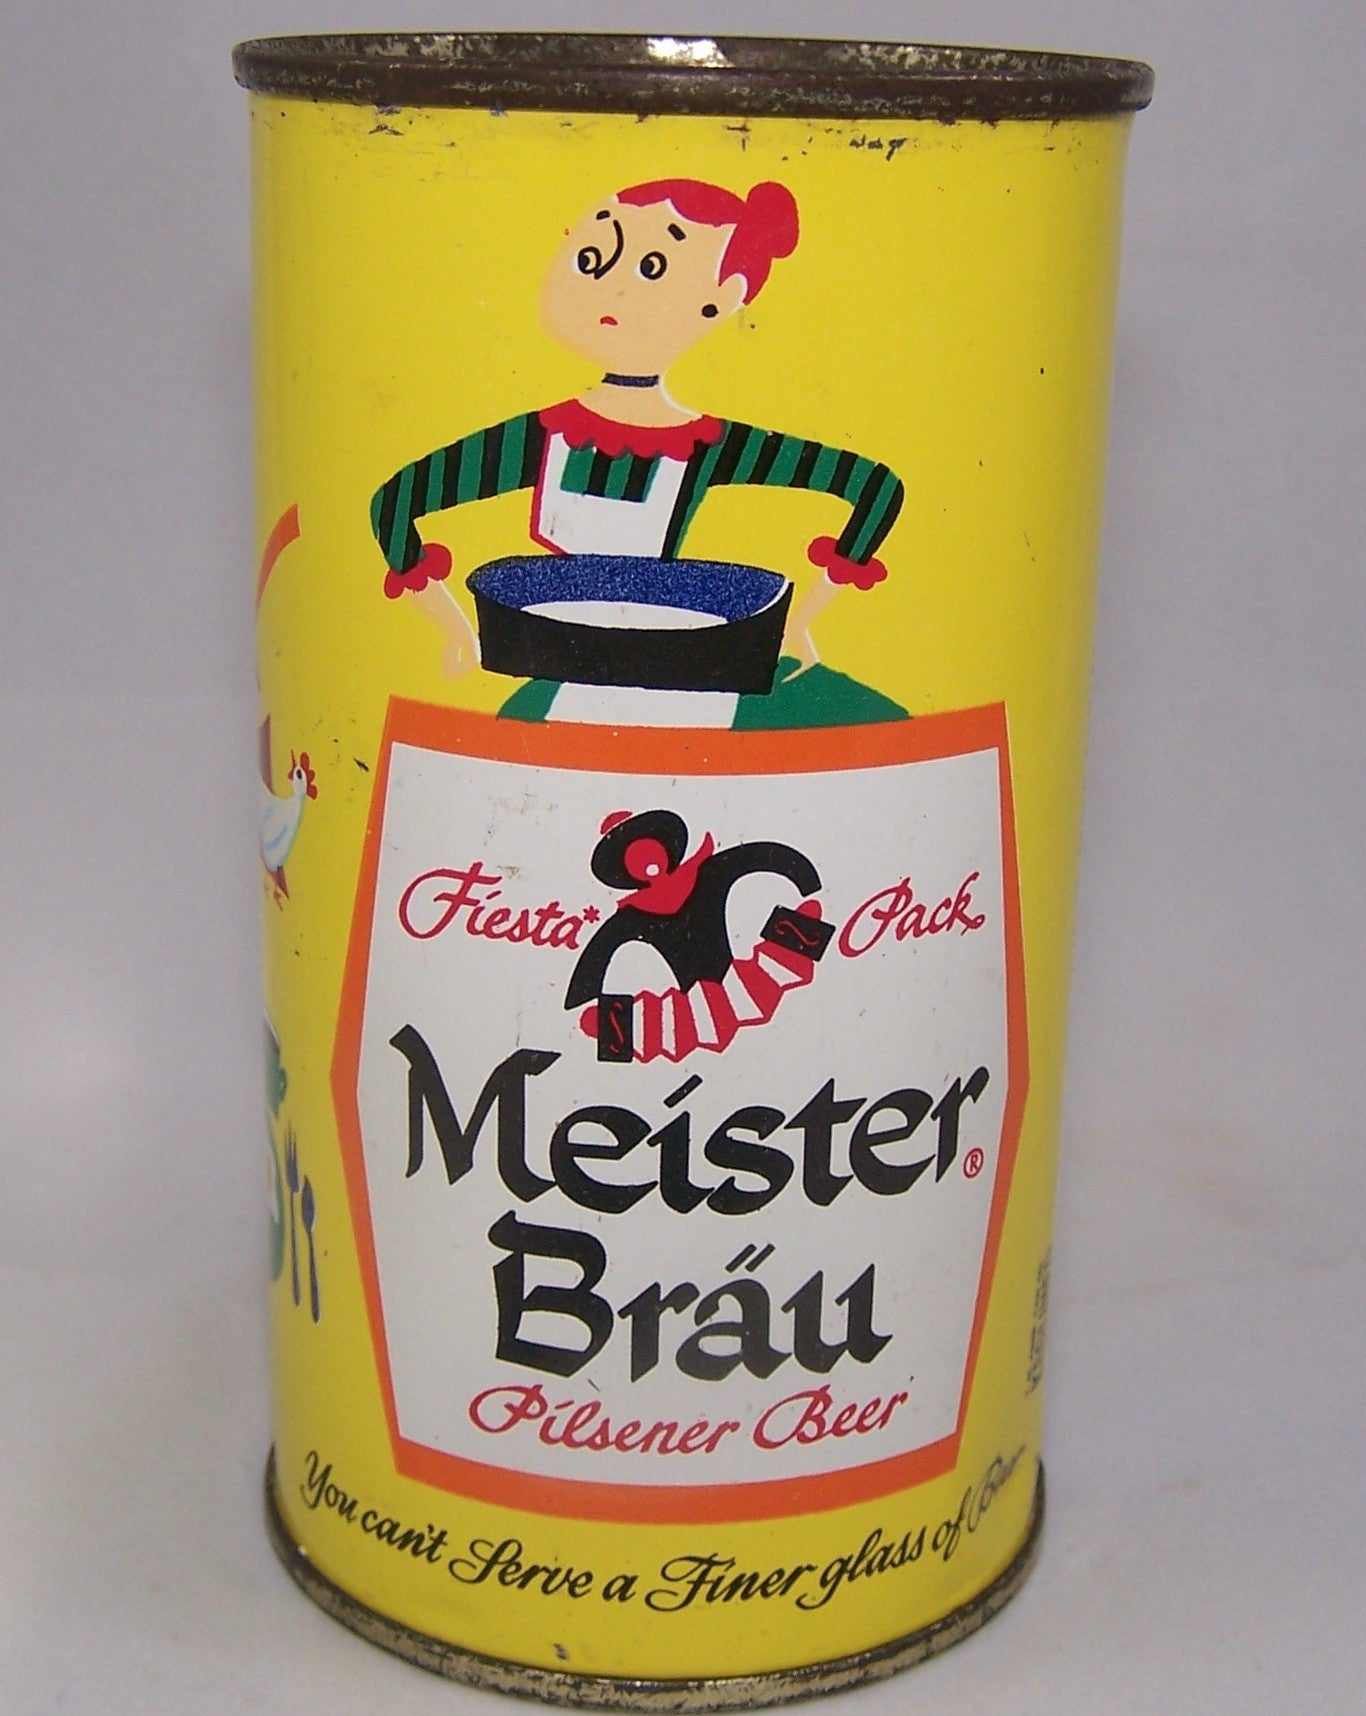 Meister Brau Pilsener Beer, USBC 98-1, Grade 1 Sold on 7/29/15